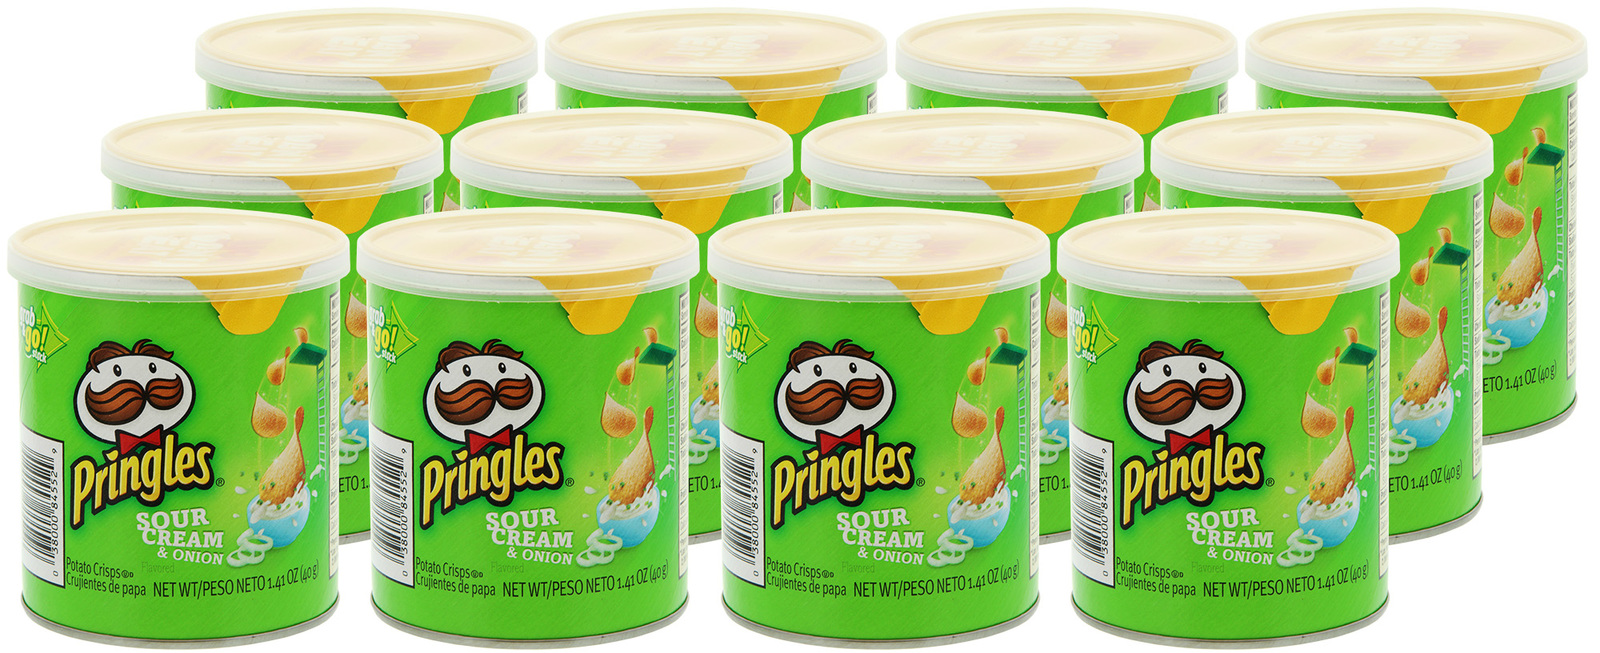 Pringles Grab & Go Small SC & Onion 40g (12 Pack) image